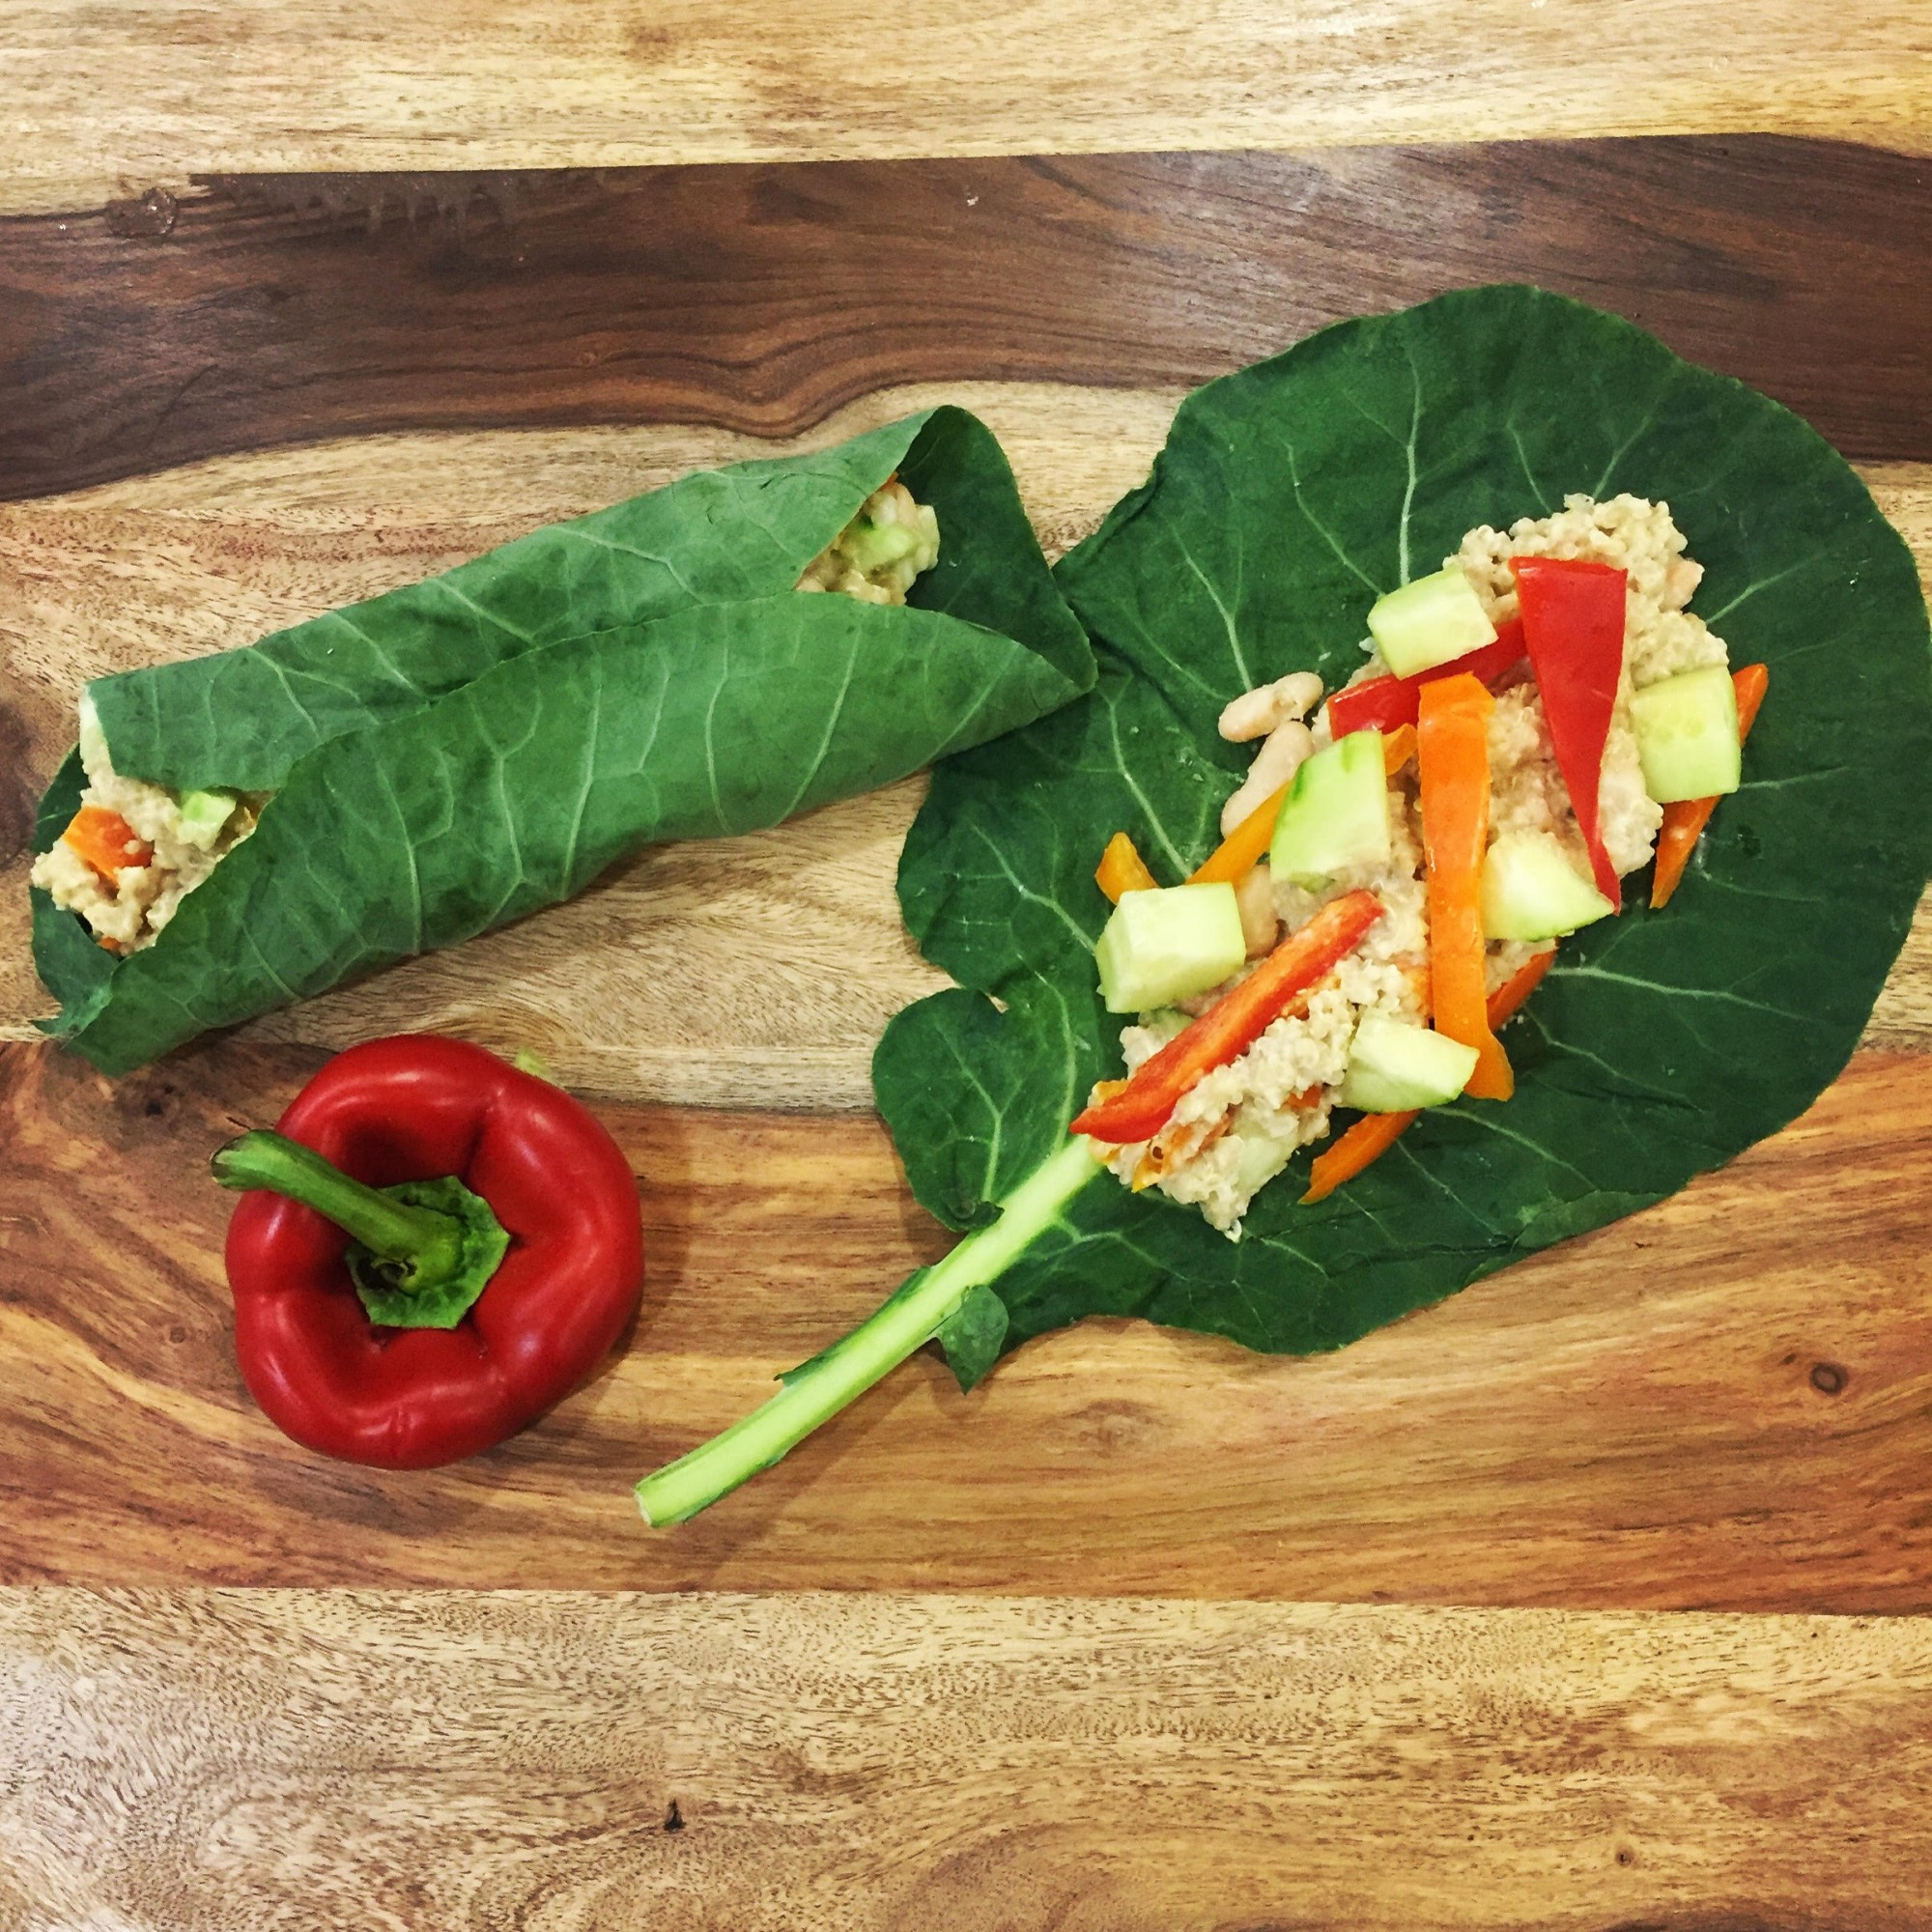 Wellness Wraps & Hummus Recipes